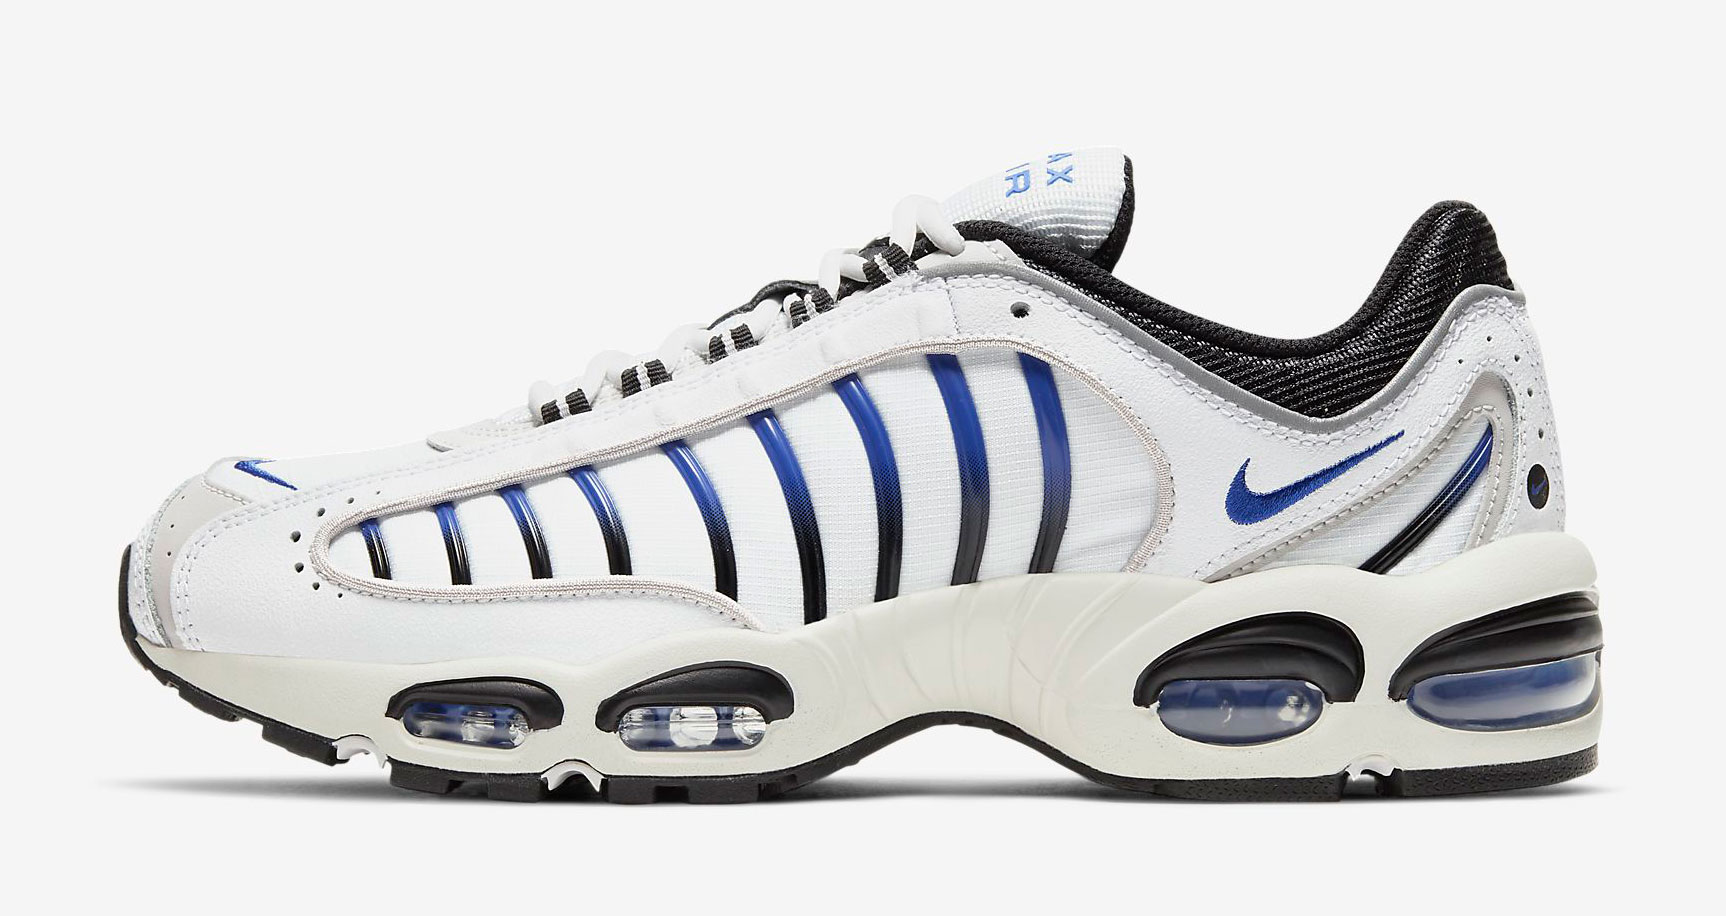 nike-air-max-tailwind-4-summit-white-racer-blue-release-date